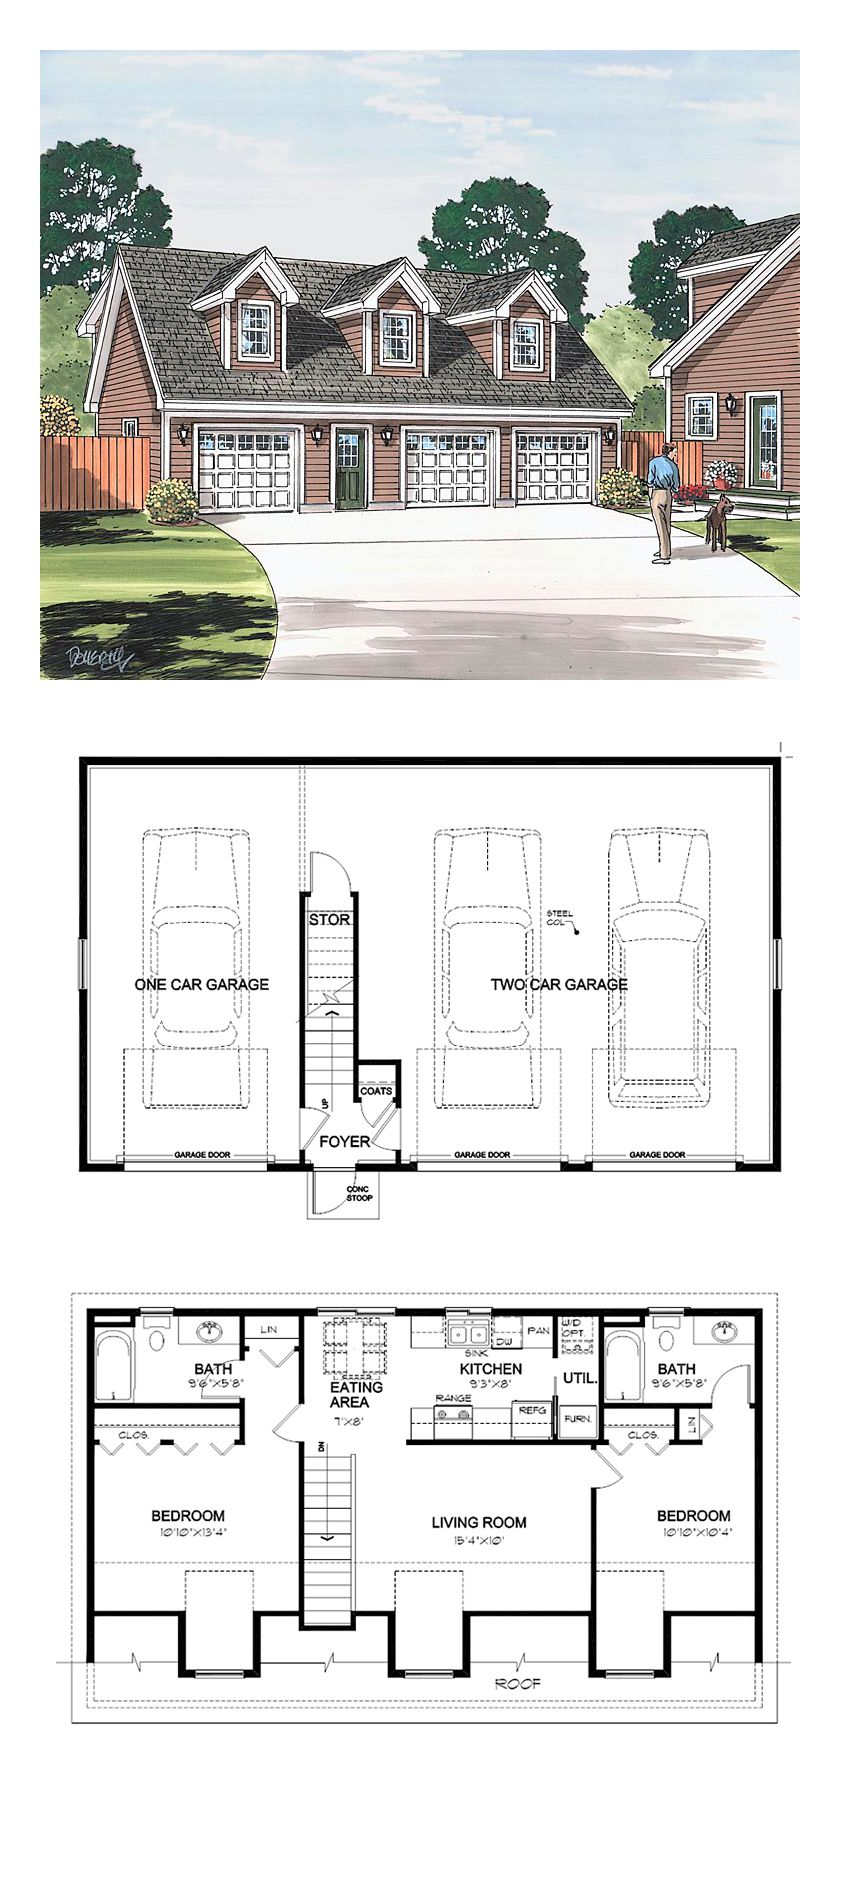 Home Plans With Apartments Attached Garage Apartment Plan 30032  Total Living Area 887 Sqft. 2